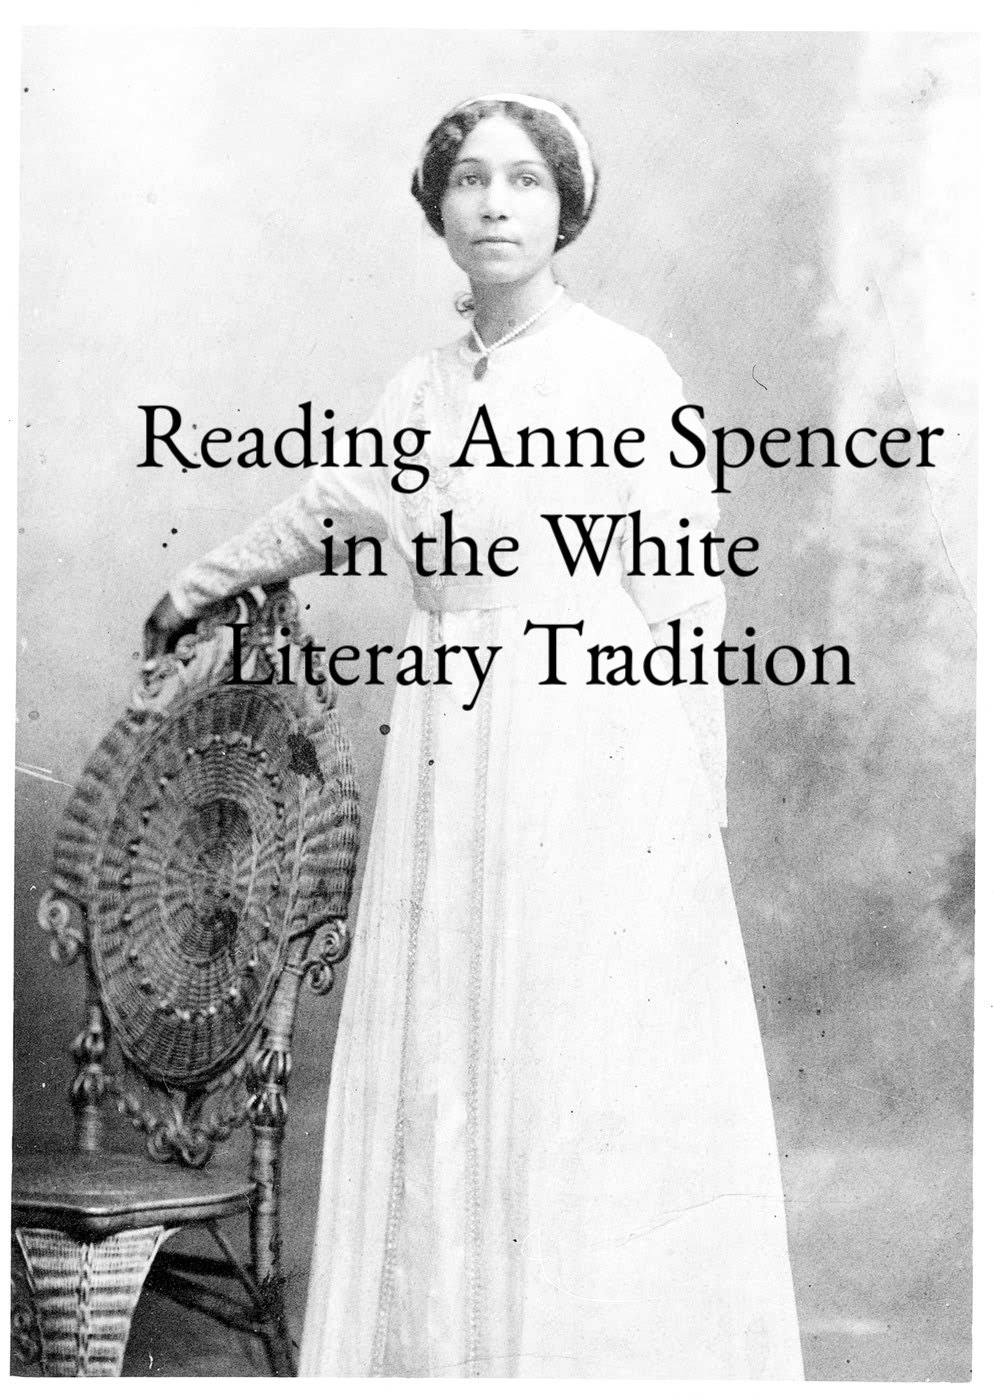 Reading Anne Spencer